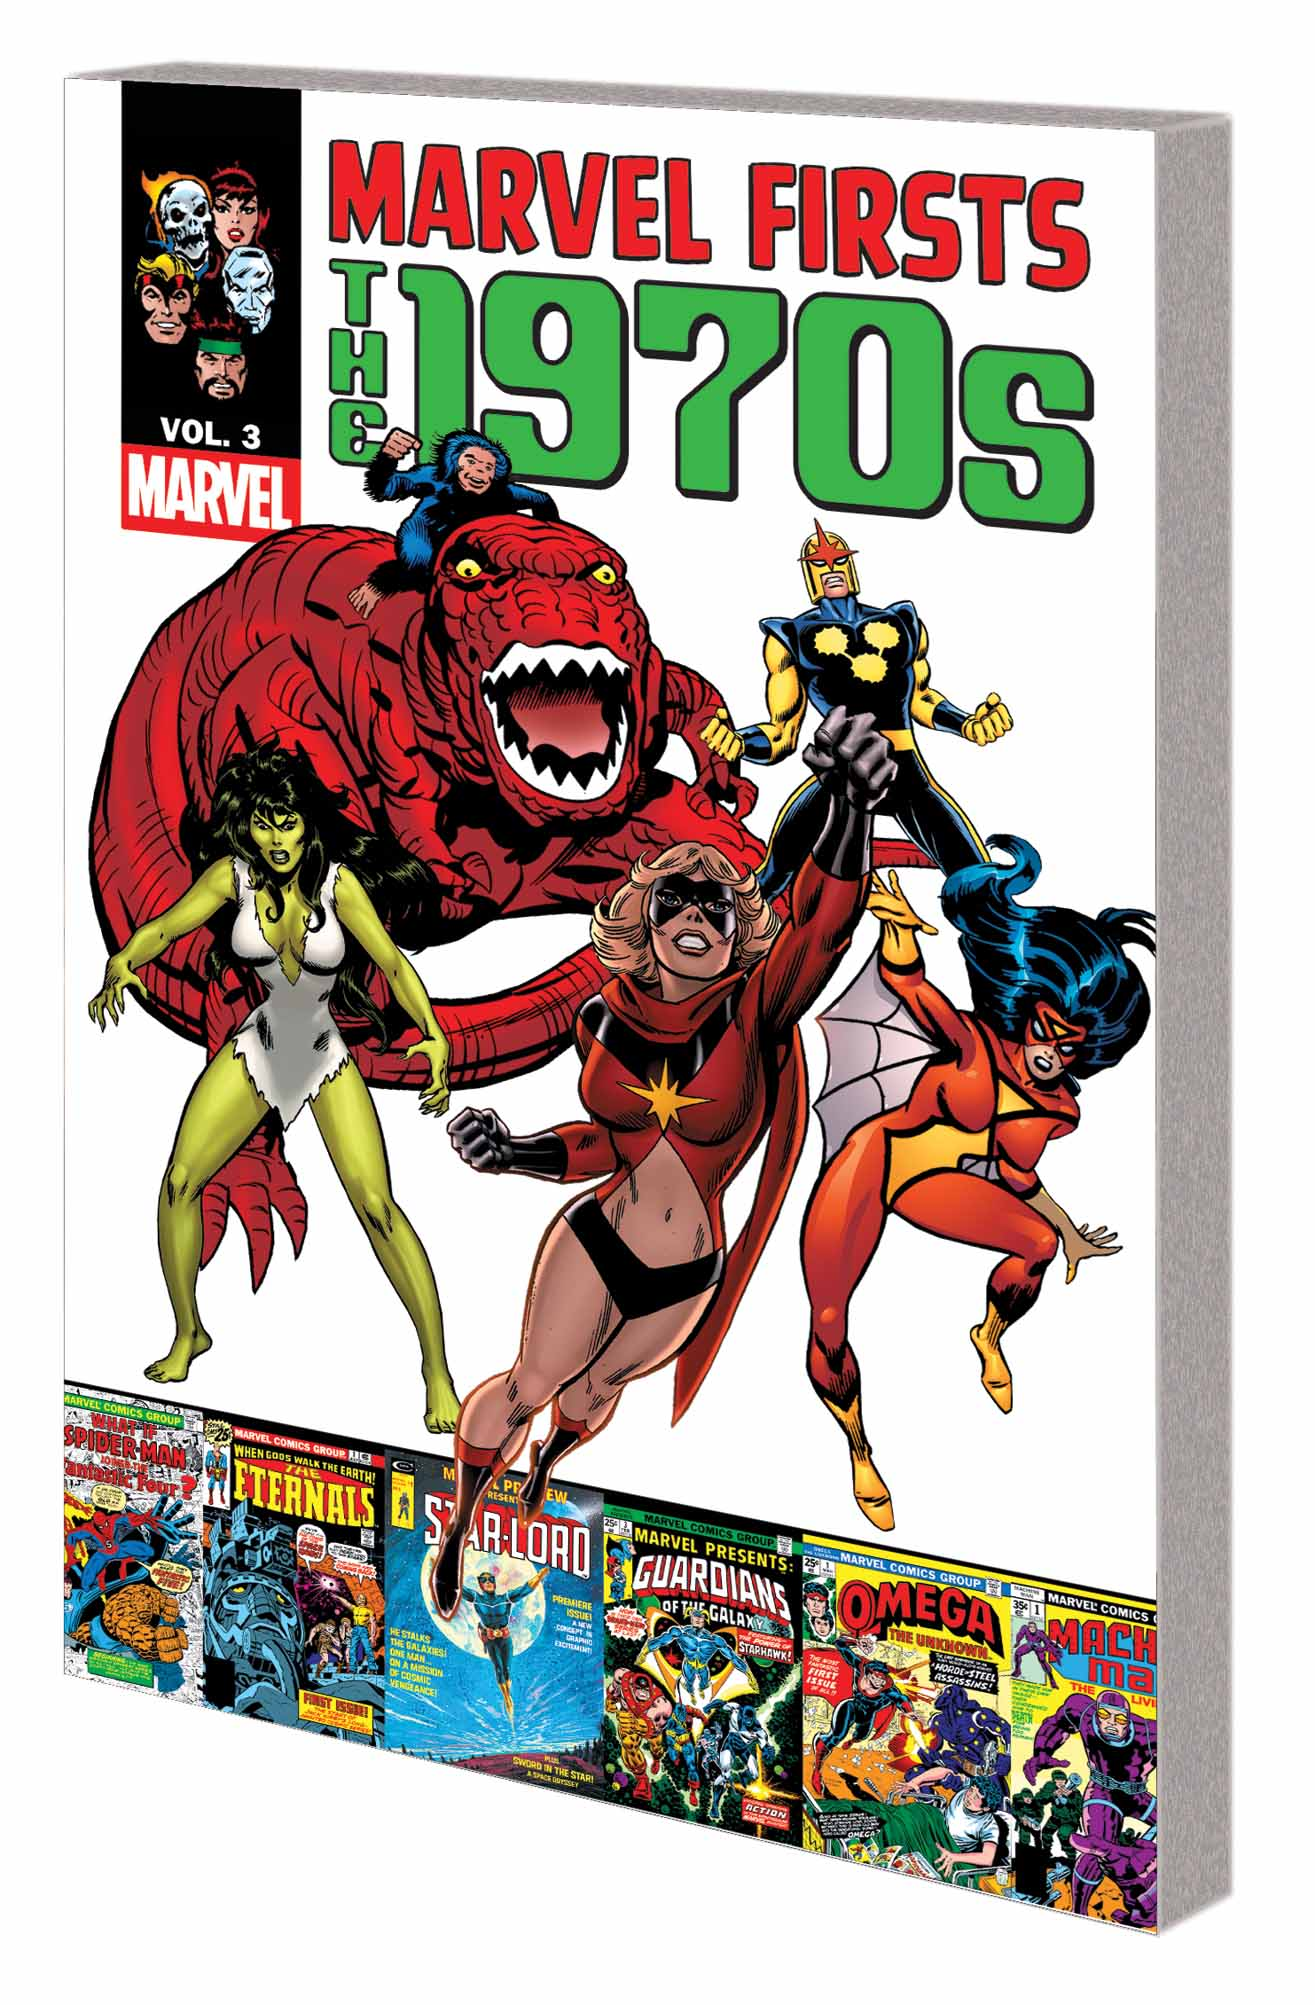 MARVEL FIRSTS: THE 1970s VOL. 3 TPB (Trade Paperback)